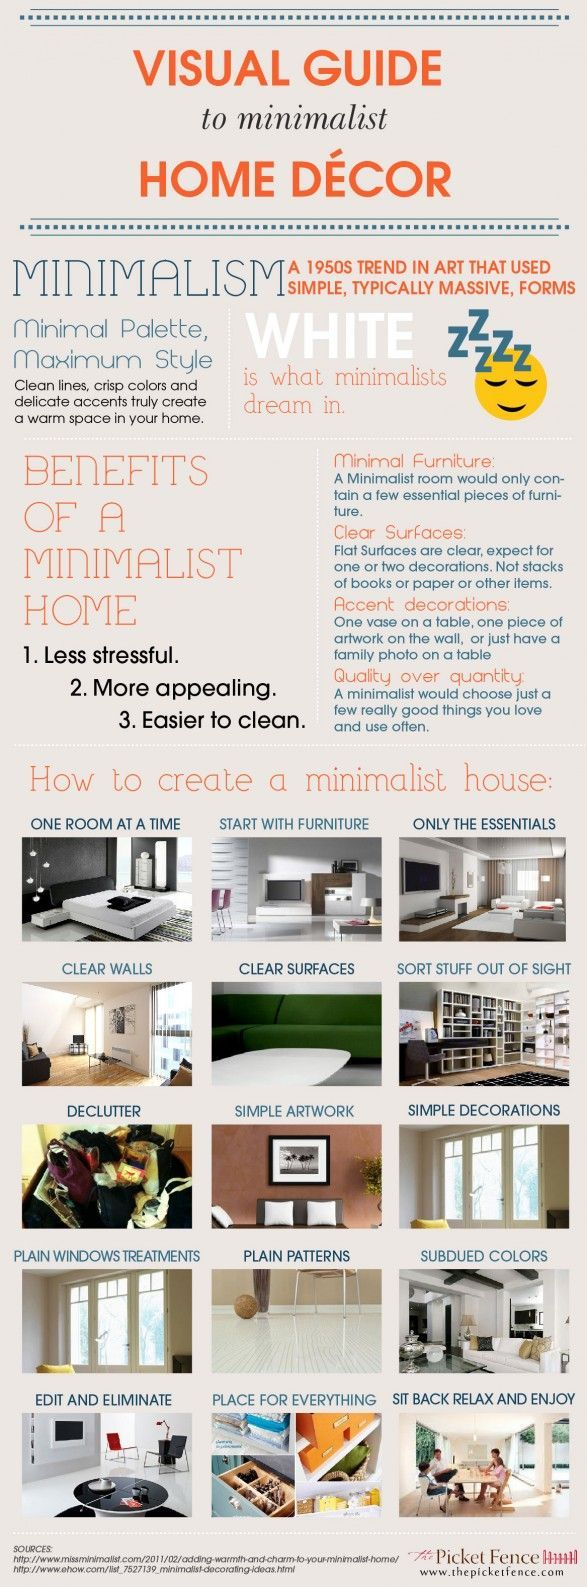 Take A Look At Our Visual Guide To Minimalist Home Decor For Ideas To Style  Your Home Just The Way You Like. Itu0027s A Great Style To Incorporate In Your  Home.